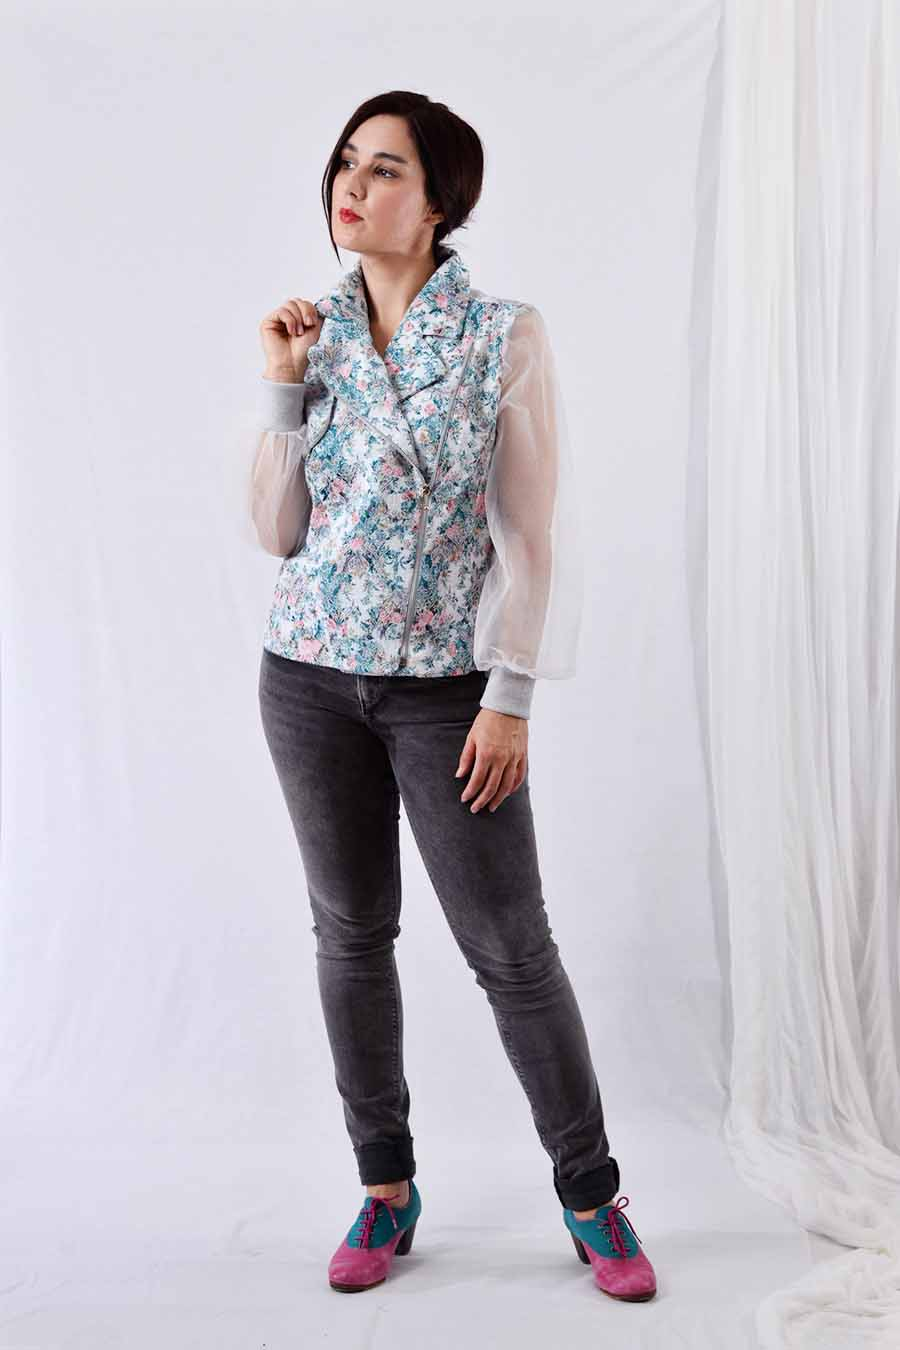 Spring jacket with pastel floral jacquard print and tulle sleeves